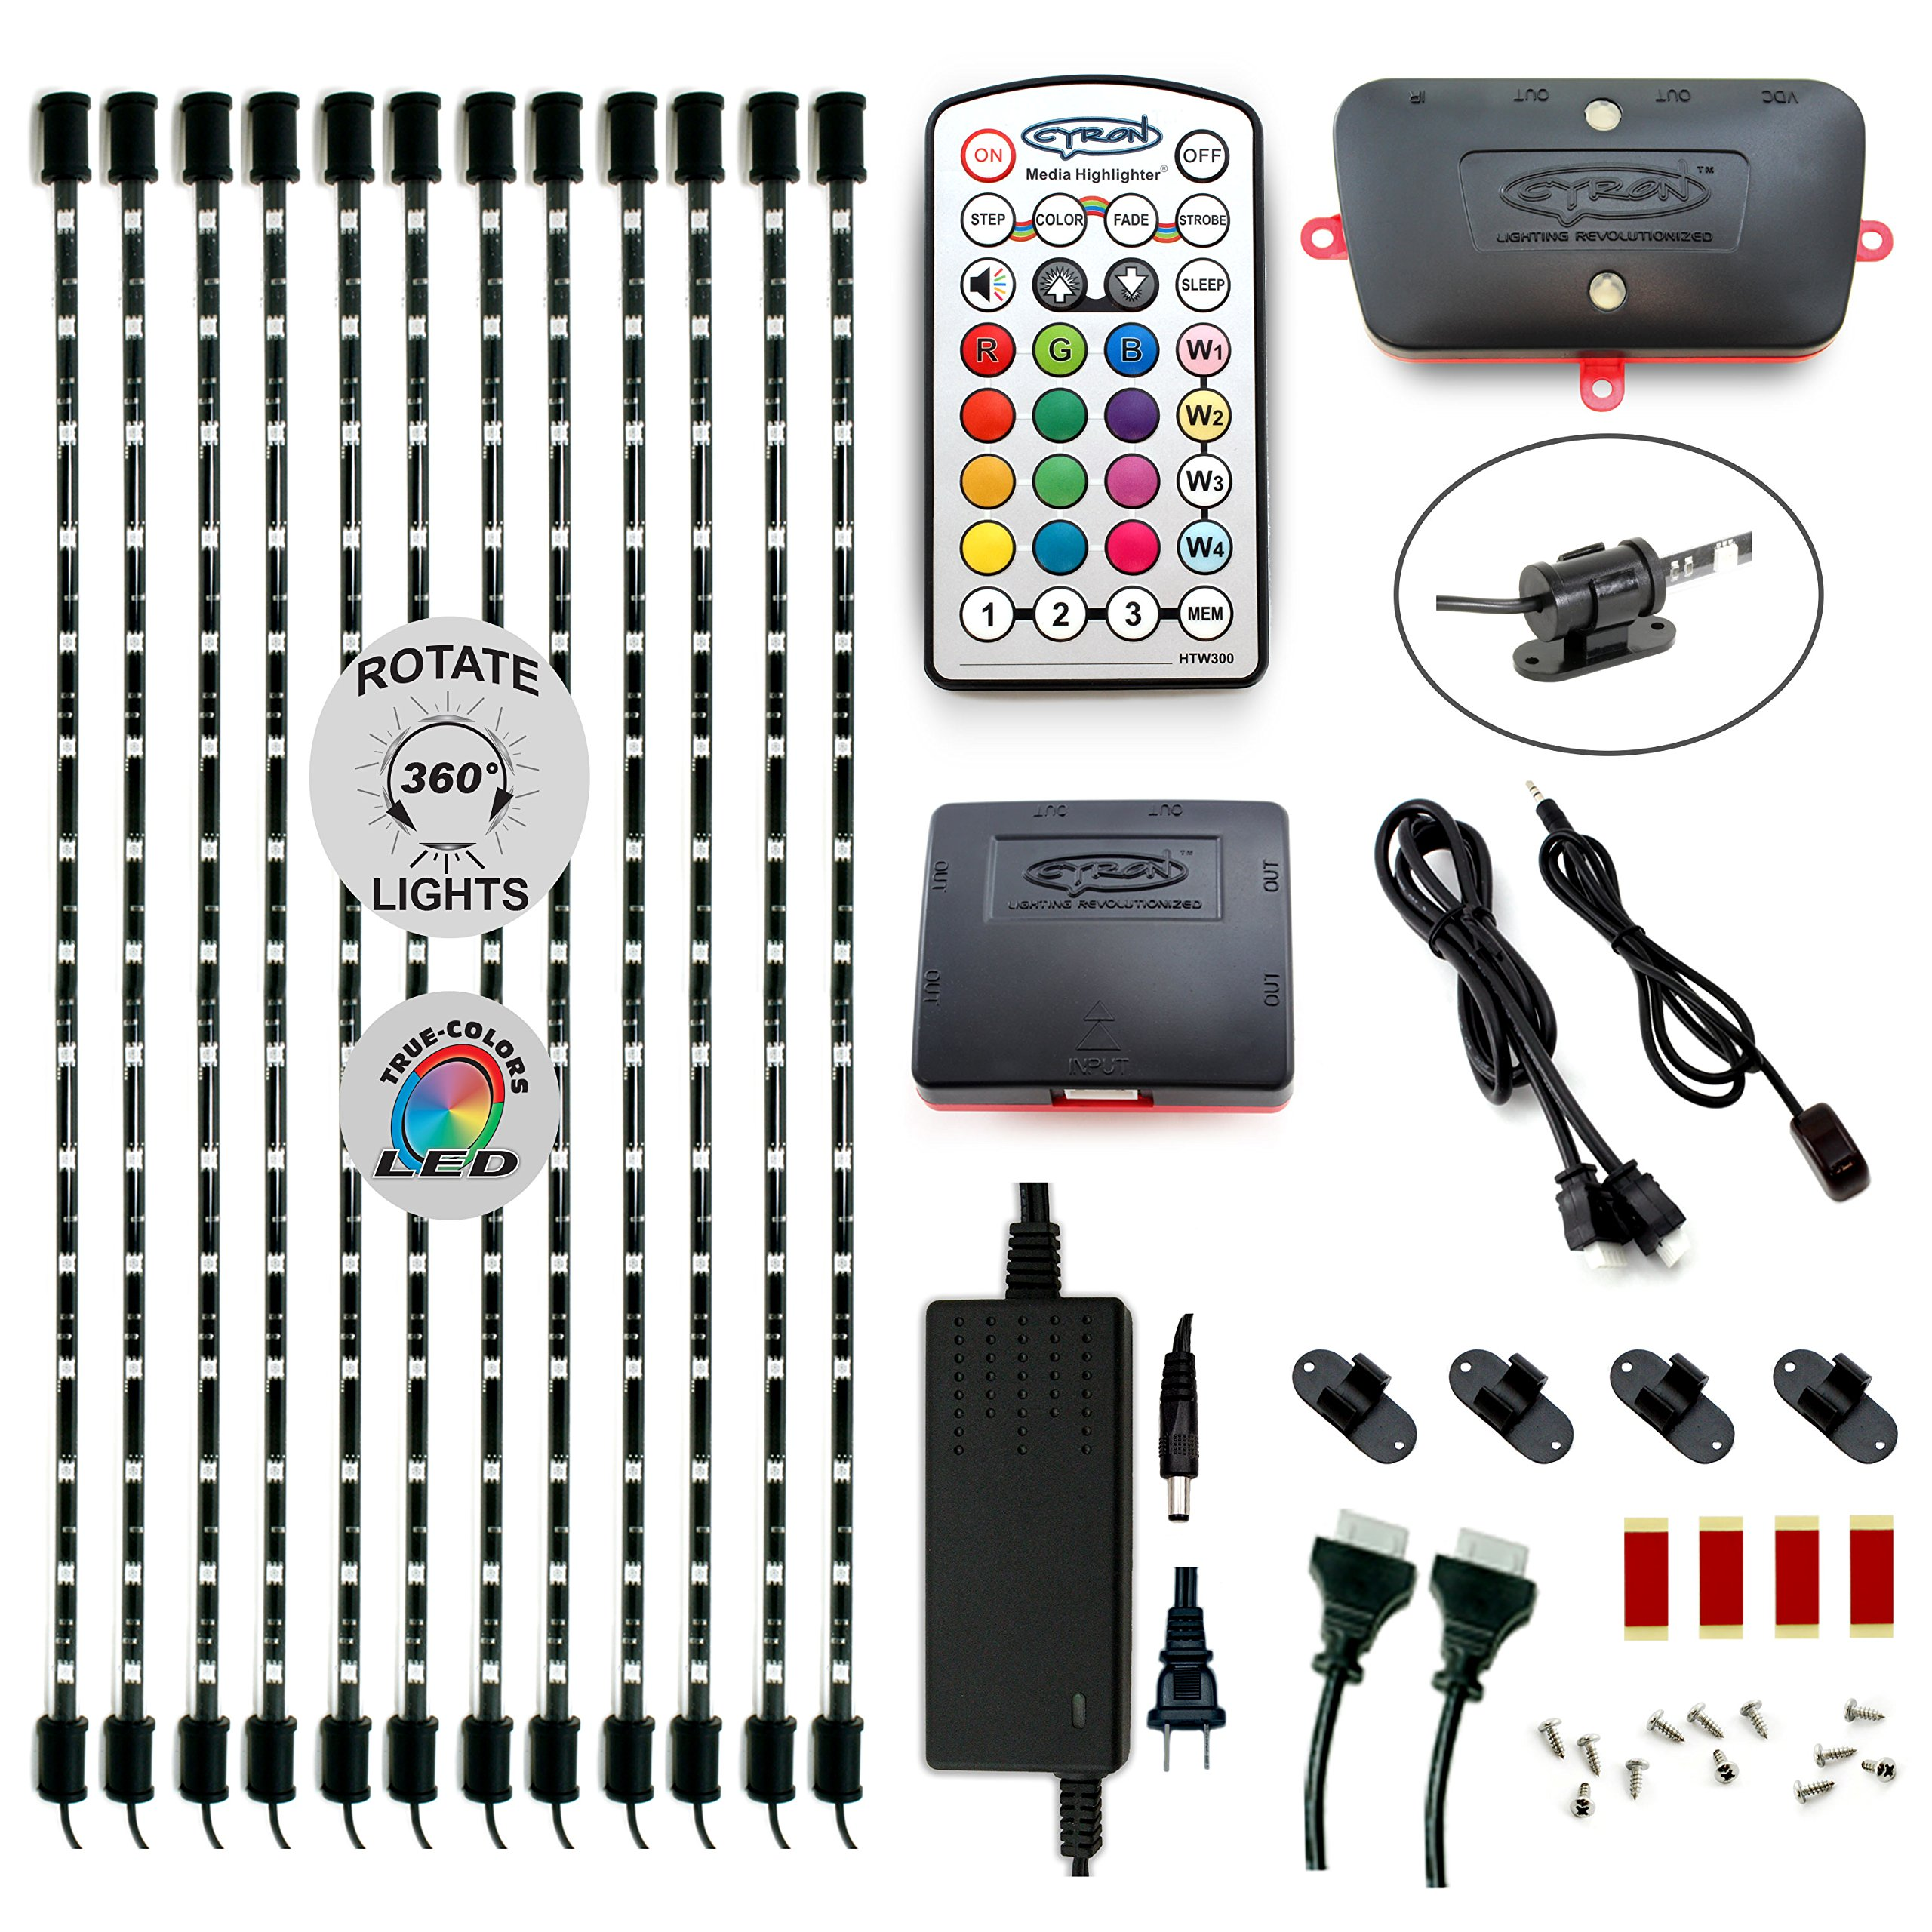 Cyron RGB LED Under Counter Cabinet Dimmable Multicolor Light TV Accent Lighting Kit, Advanced Series Controller, 360 Degrees Rotatable, ETL Listed, 12 x 24 Inch LED Bars